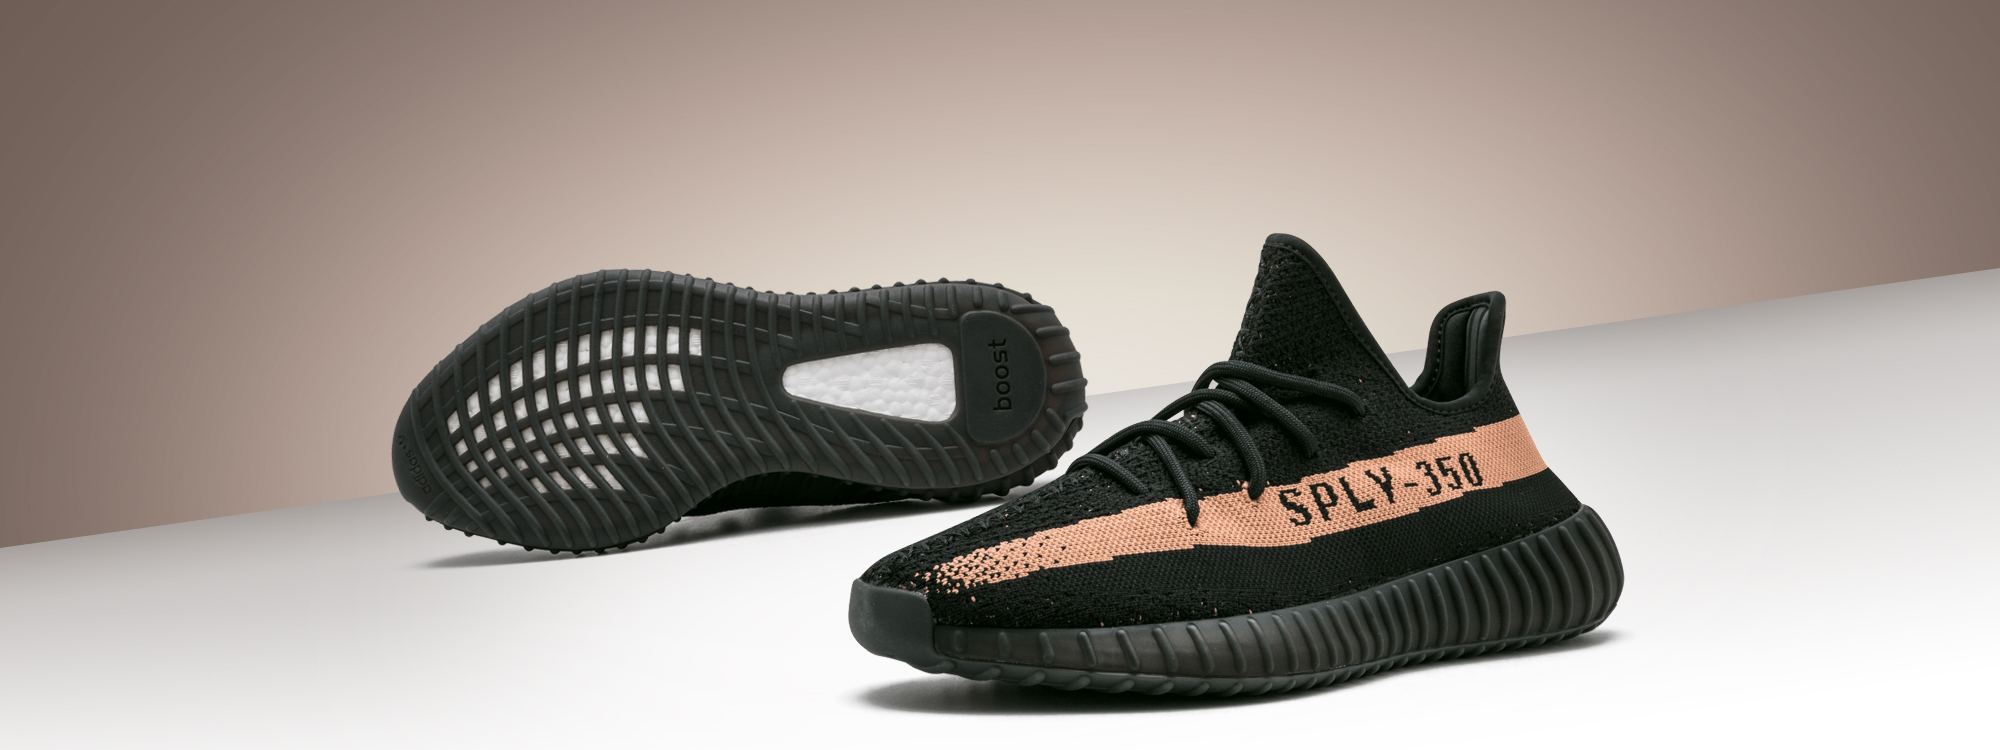 Price of Adidas Yeezy Boost 350 V2 Copper shoes